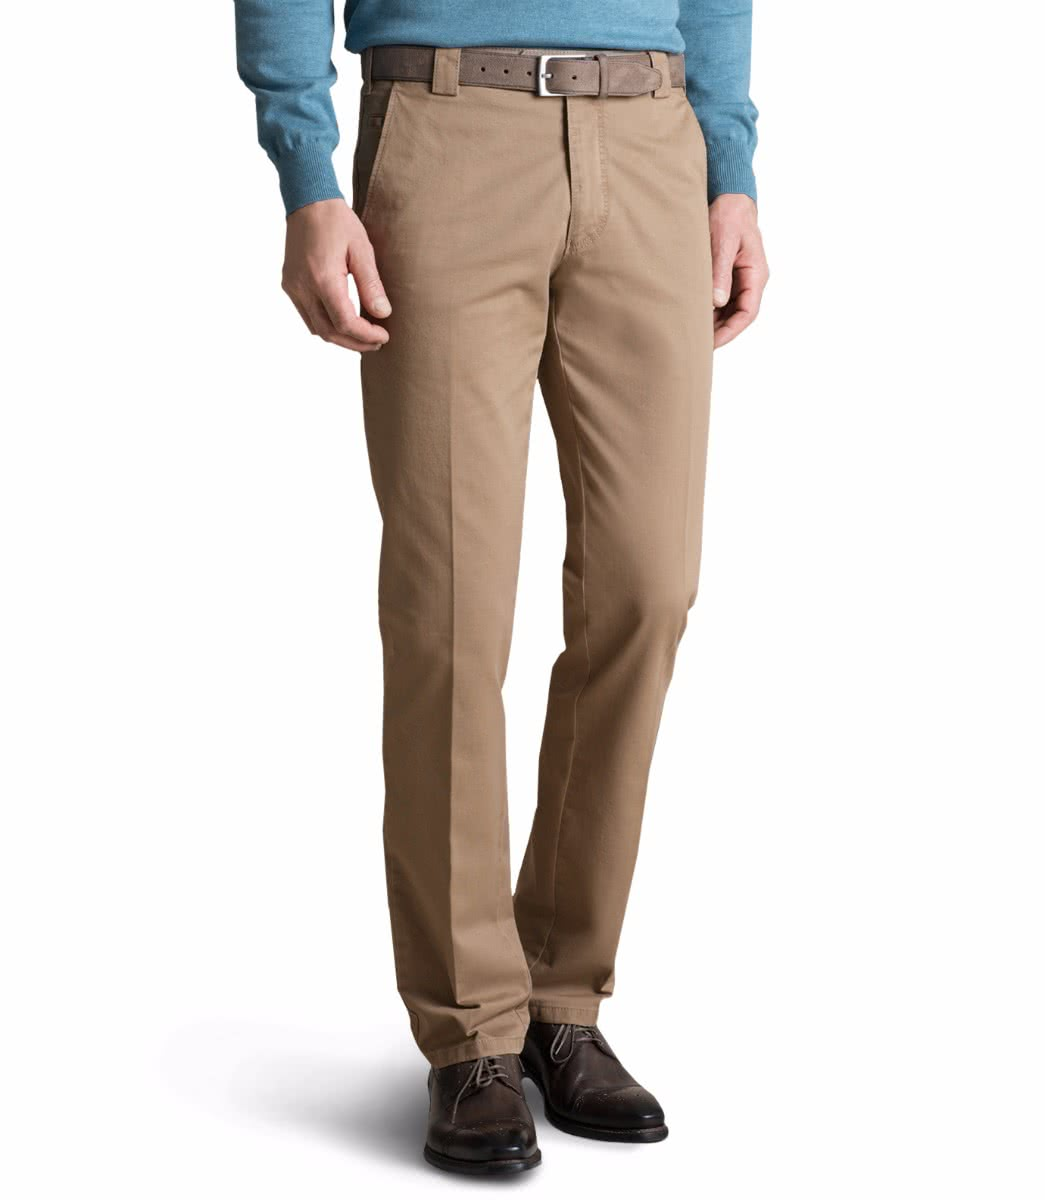 Beige Soft Cotton Chino 316-33